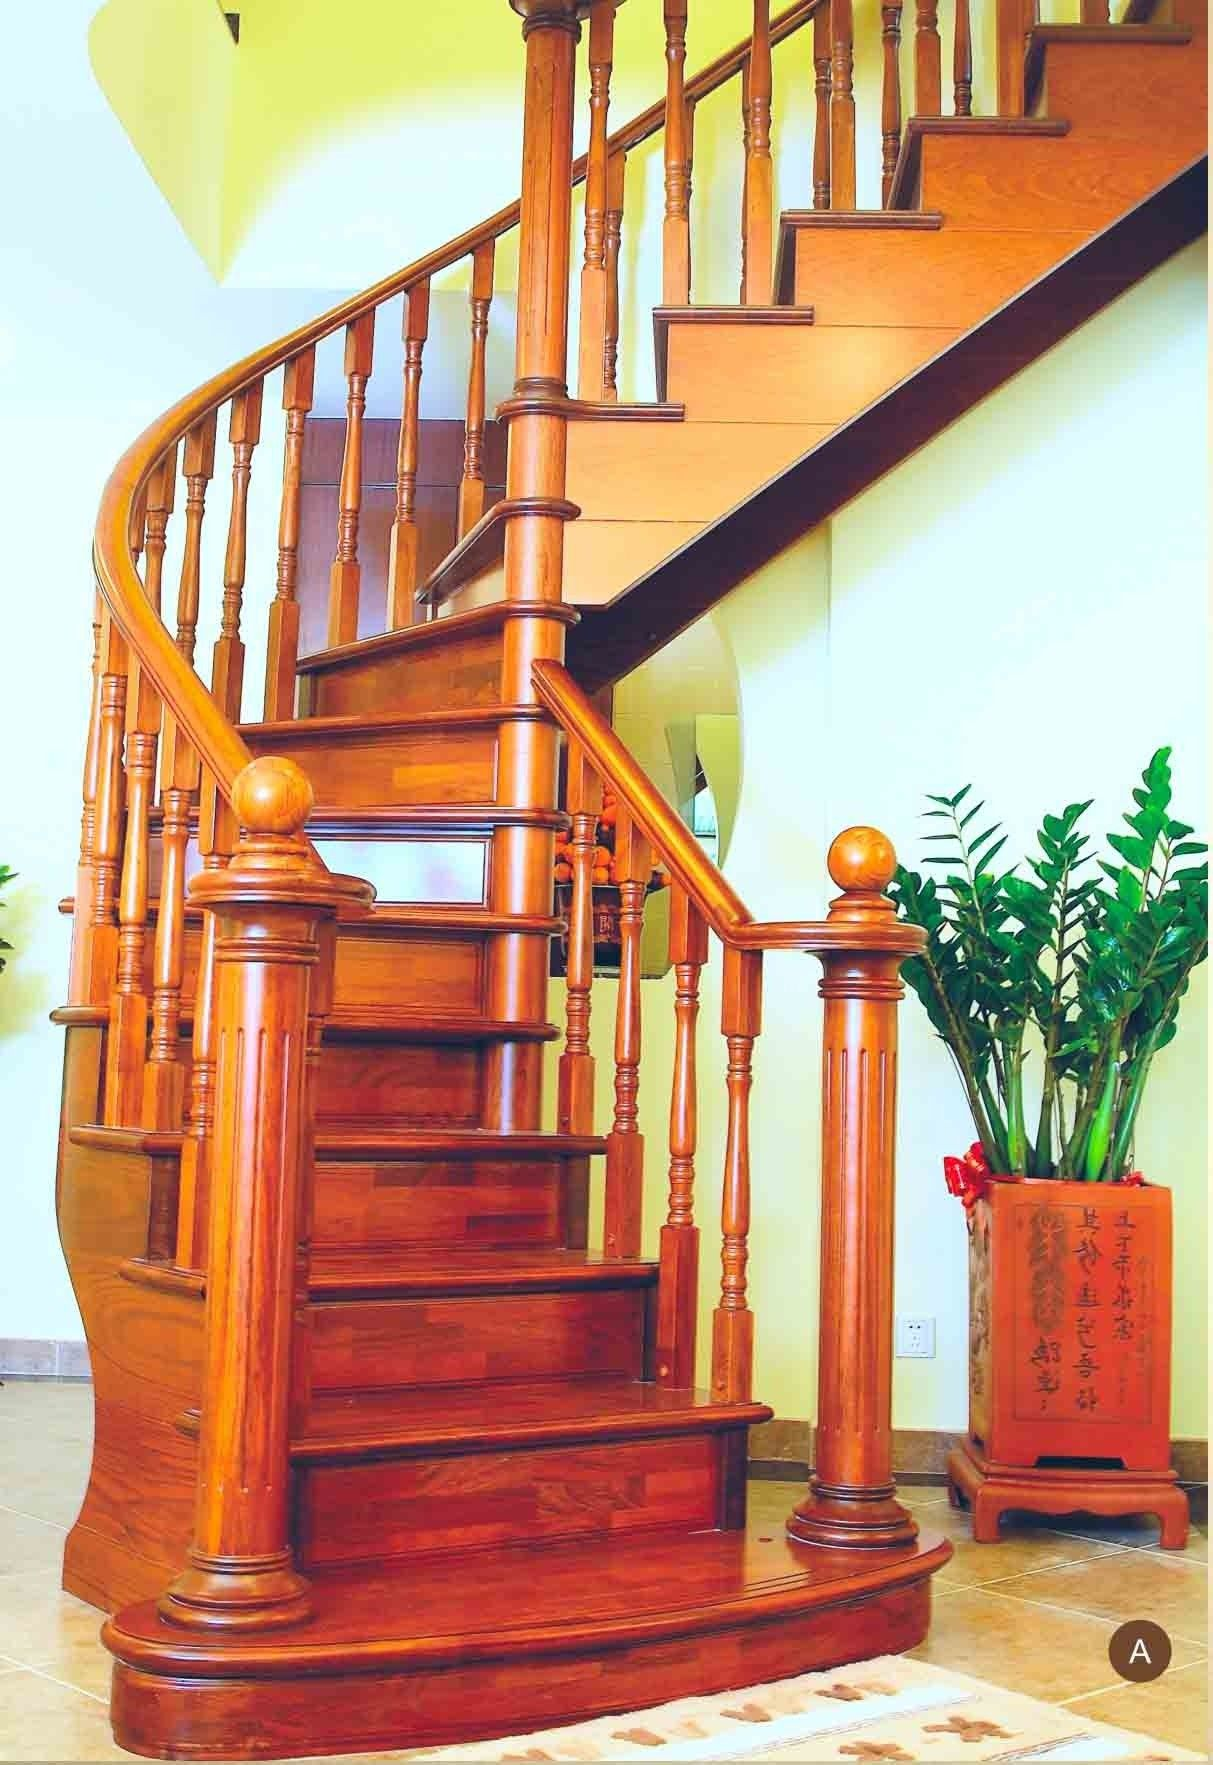 Used Metal Spiral Stairs Staircase For Sale Buy Exterior Stair Spiral Staircase Kits | Spiral Staircase For Sale